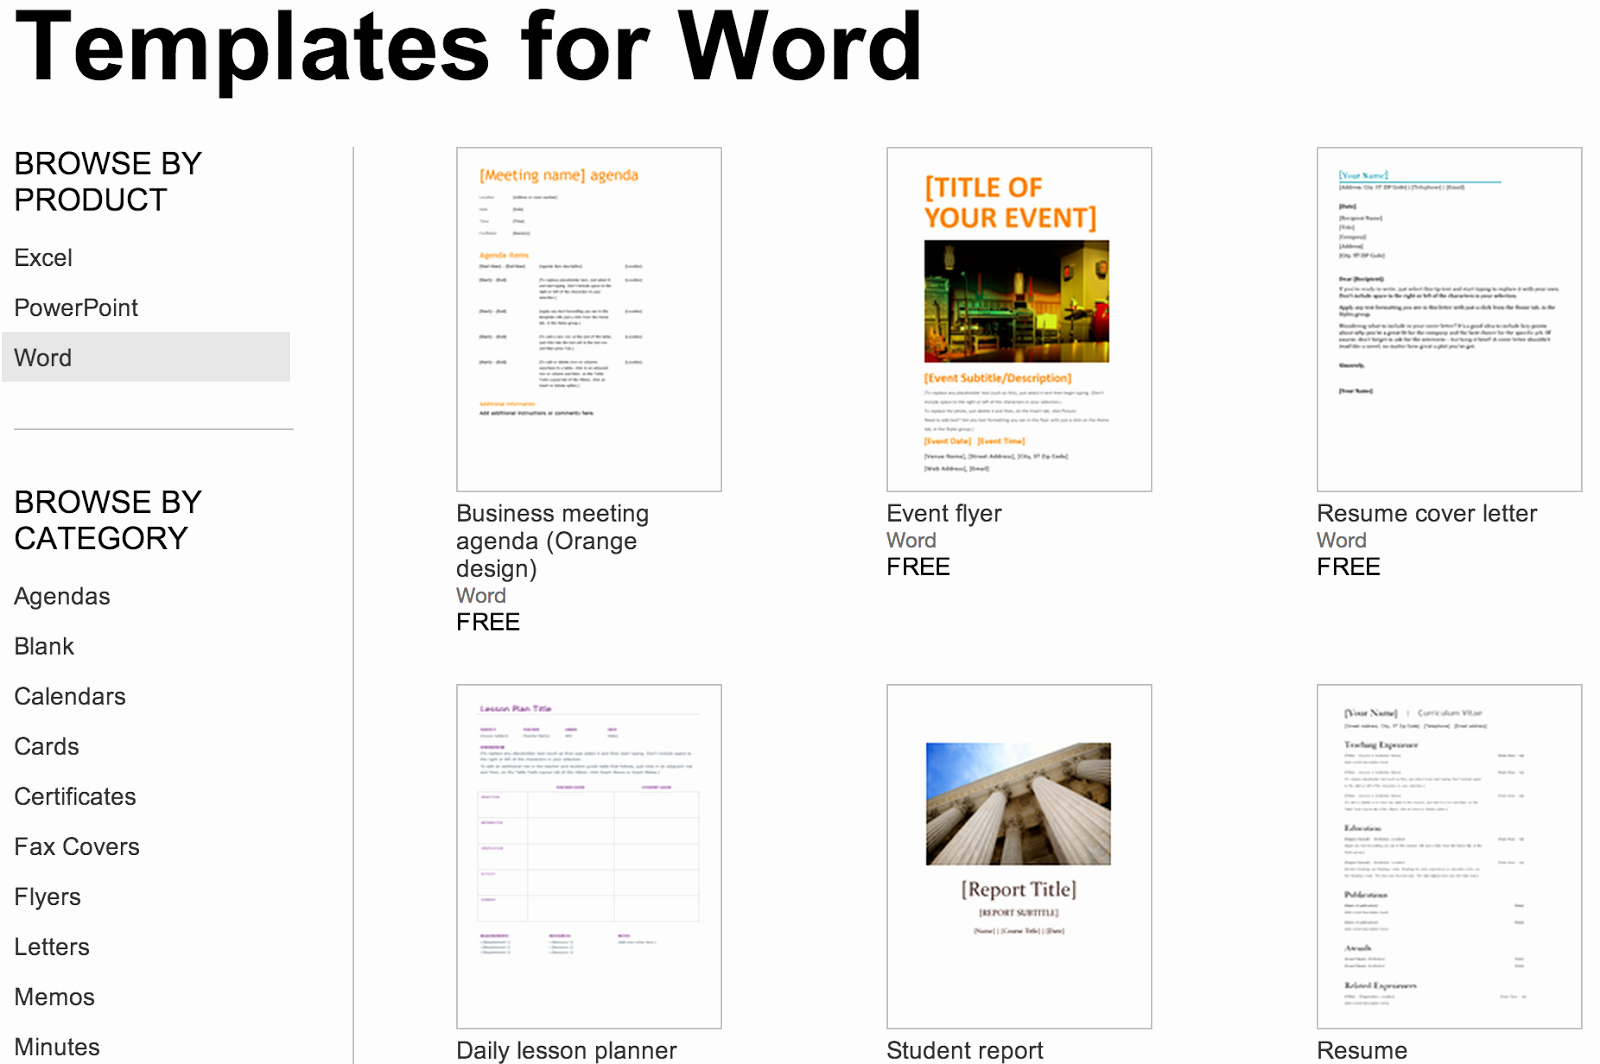 Free Recipe Templates for Microsoft Word Inspirational Over 250 Free Microsoft Fice Templates & Documents